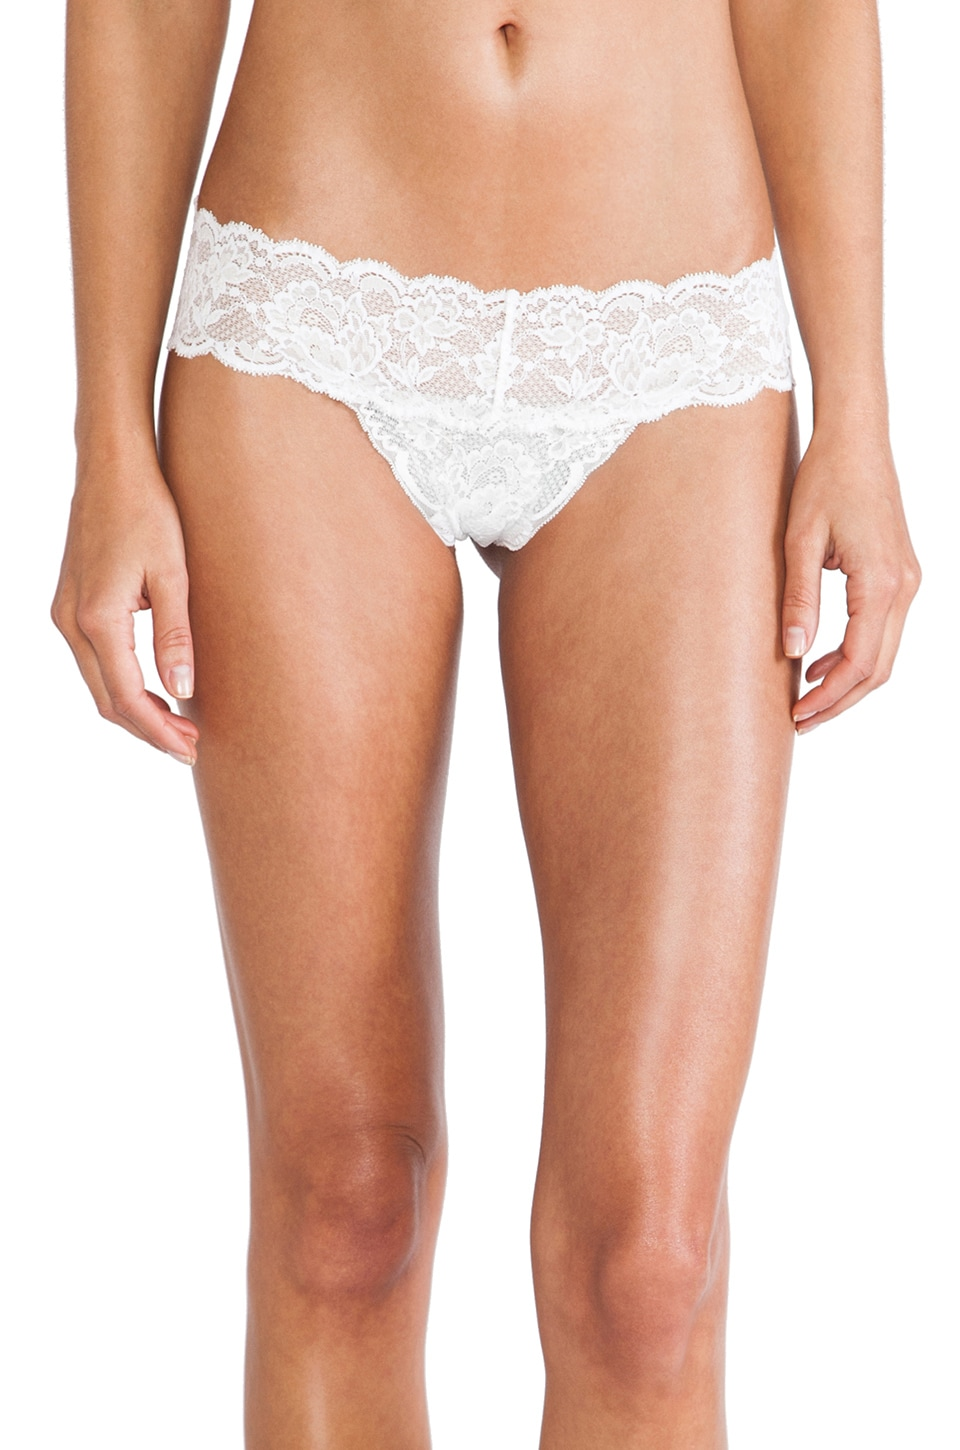 Cosabella Never Say Never Cutie LR Thong in Fluro White